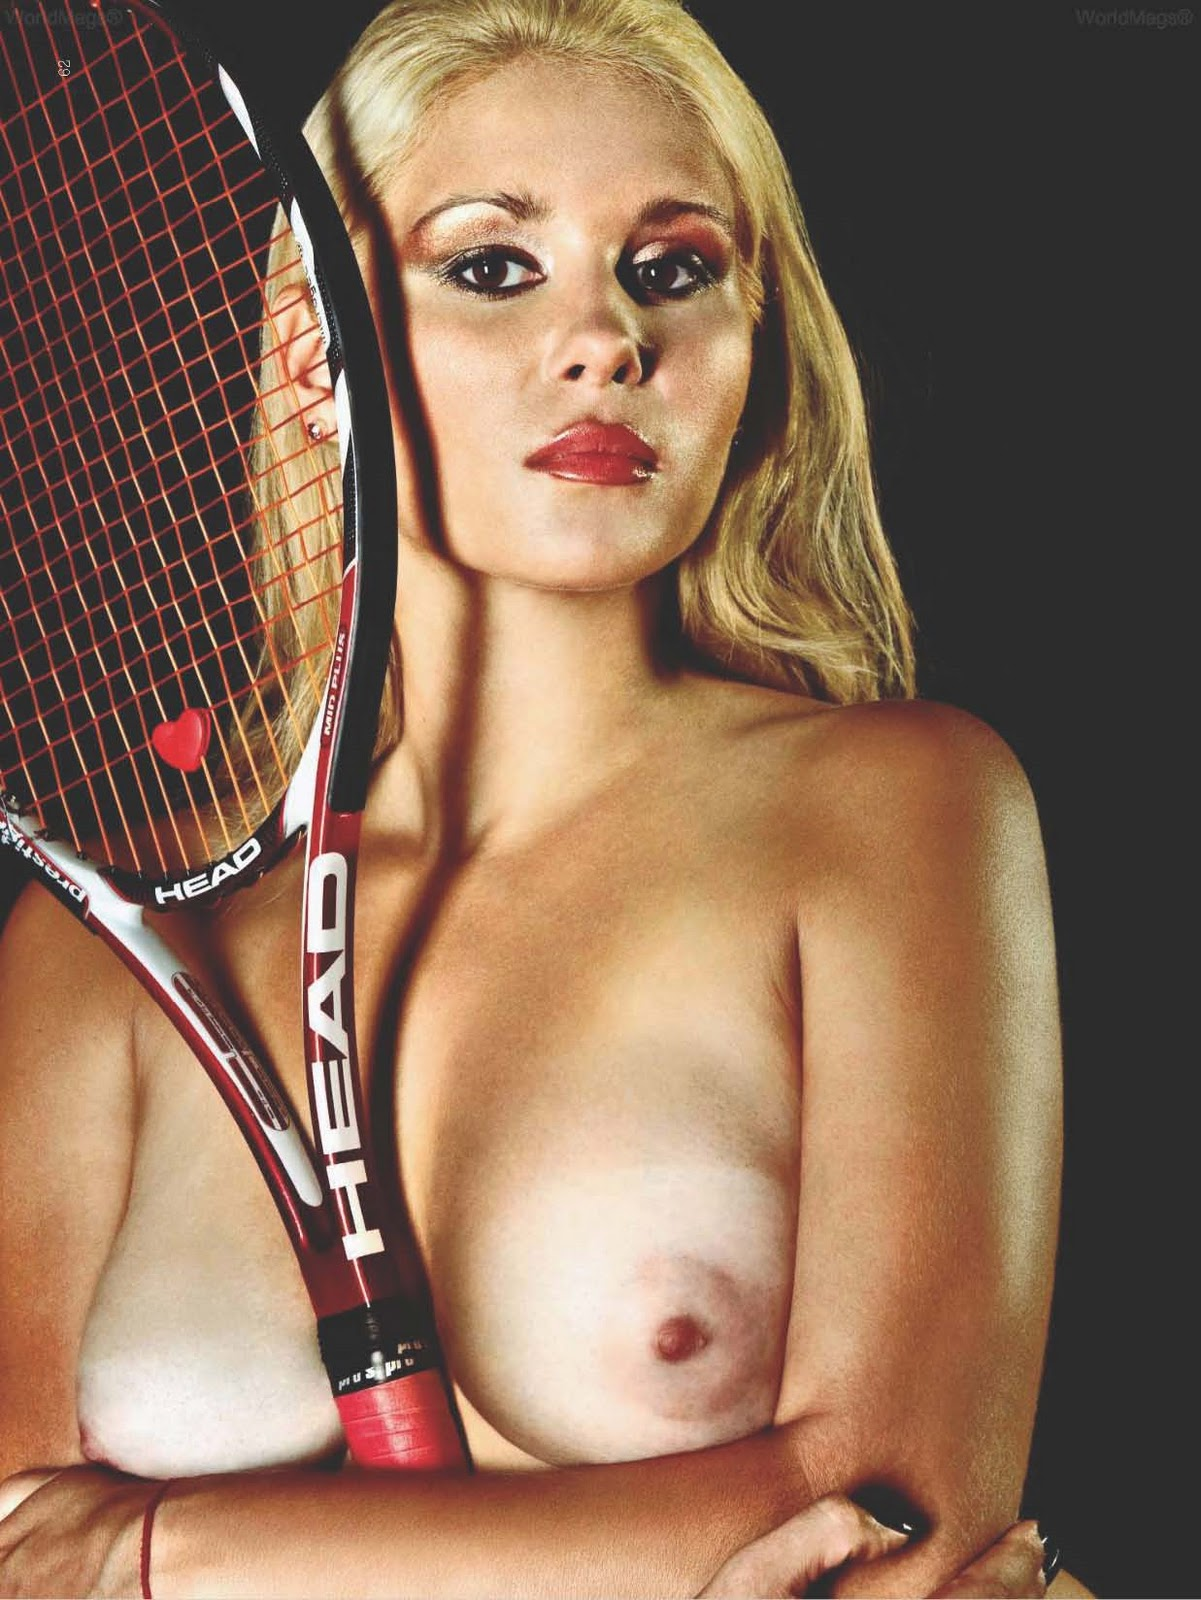 Think, that Nude female sport star